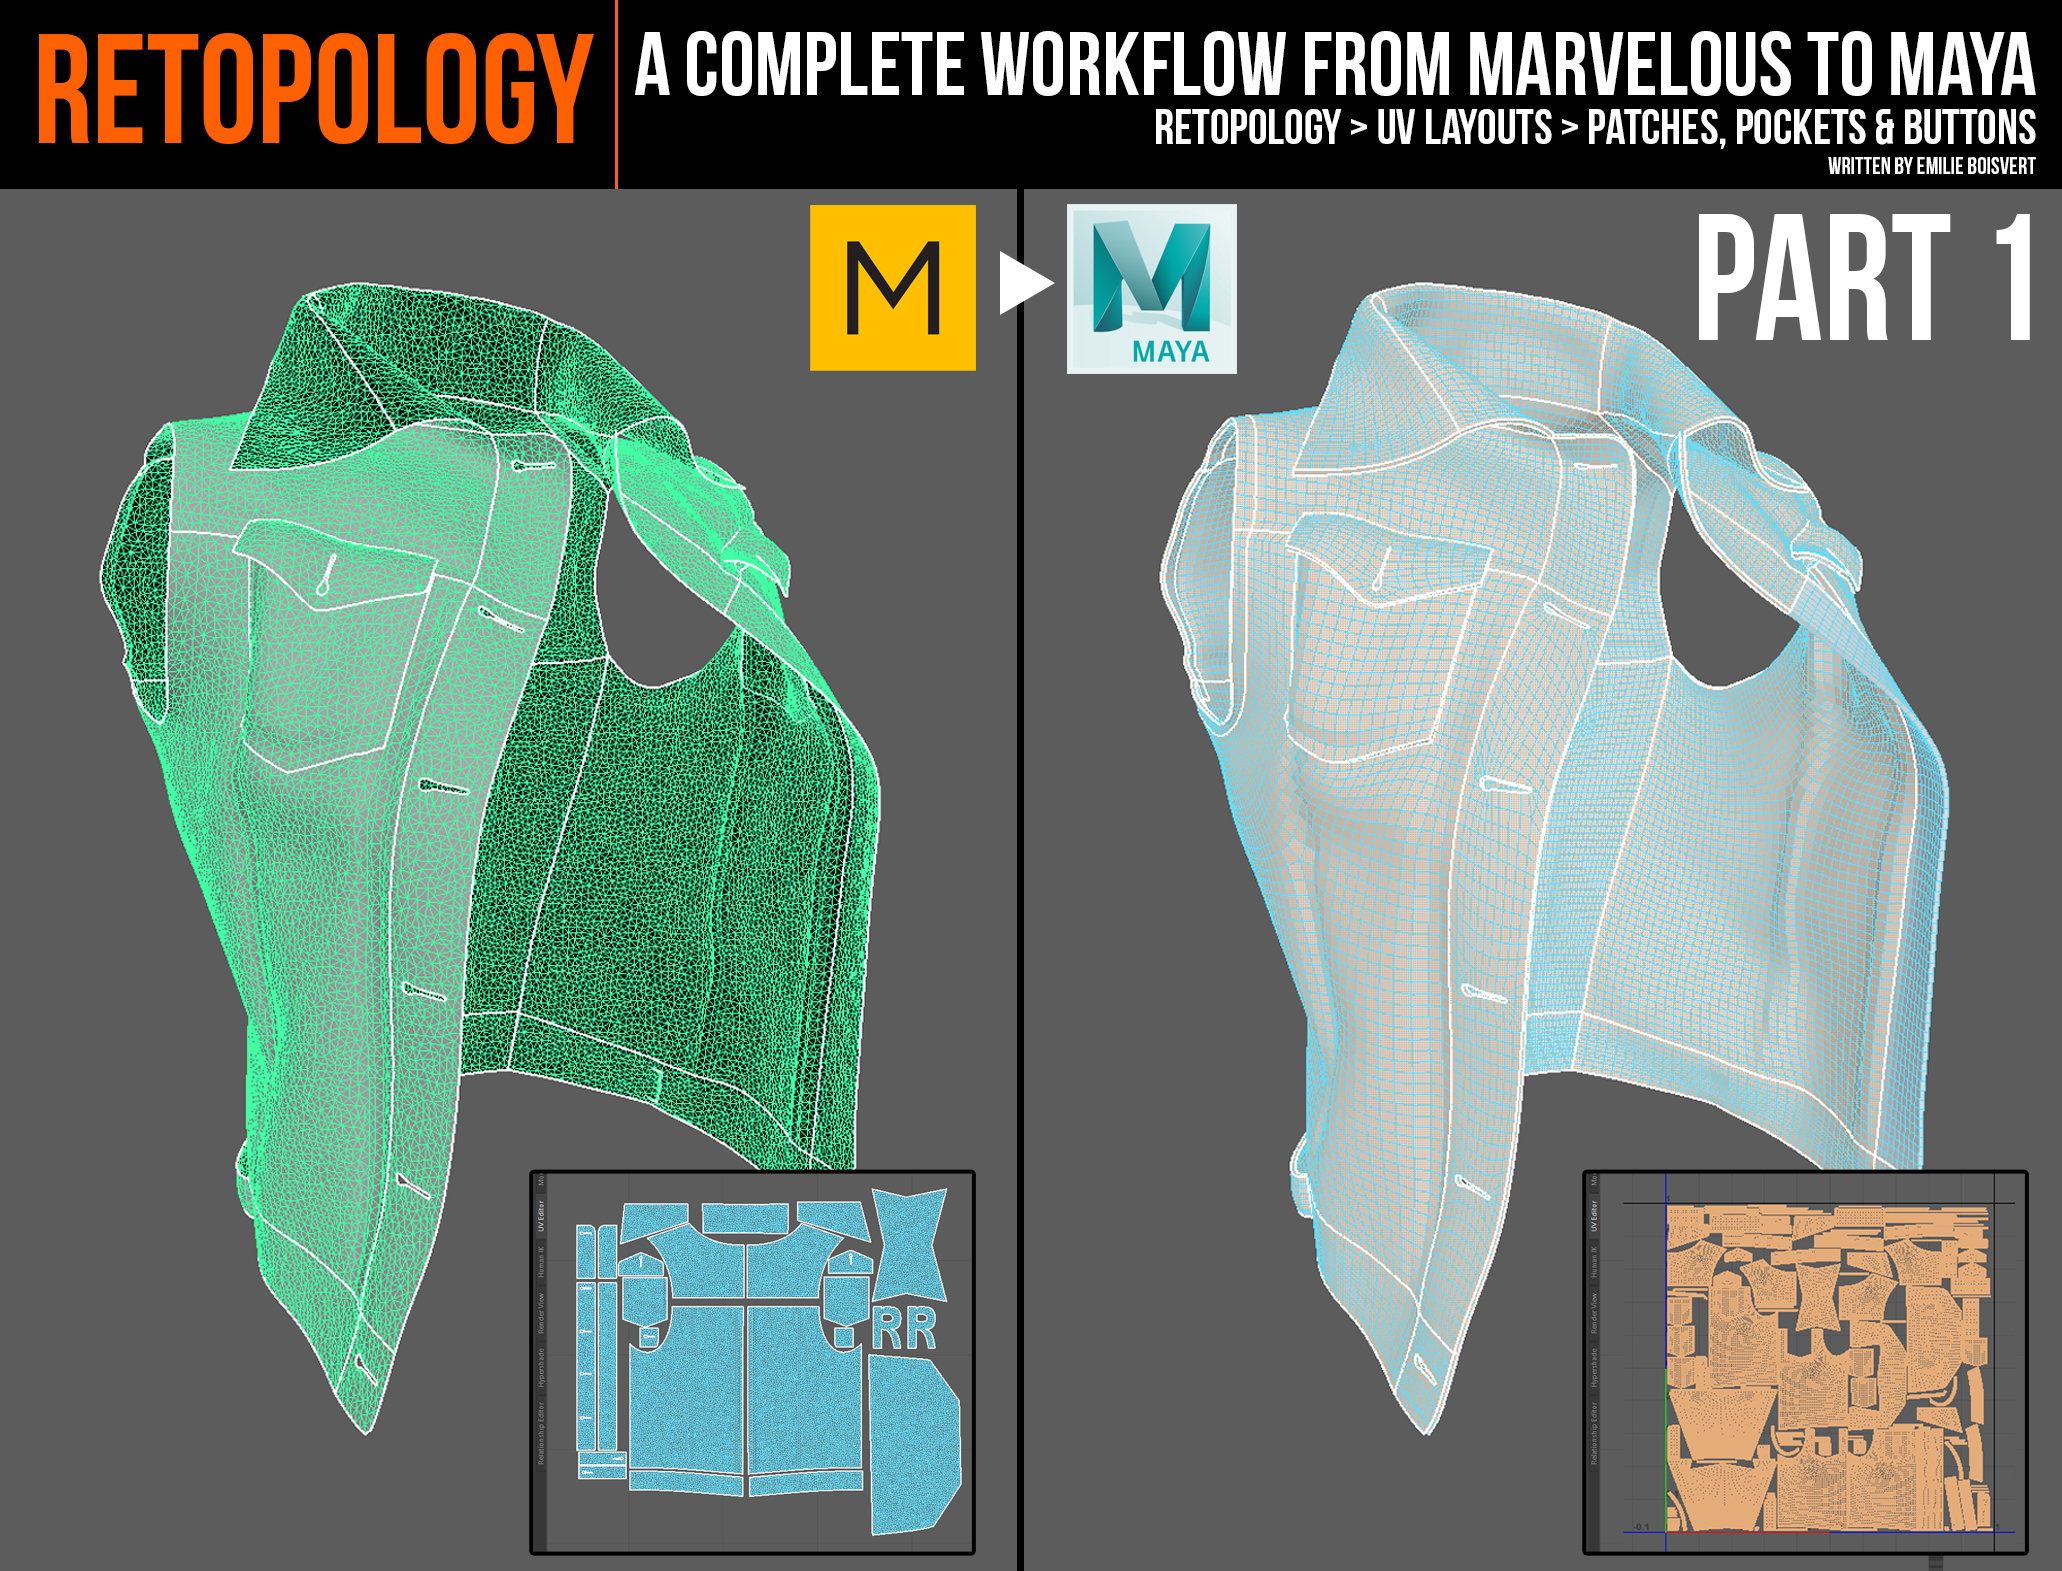 Marvelous Designer To Maya Retopology Workflow Part 1 5 Cghow